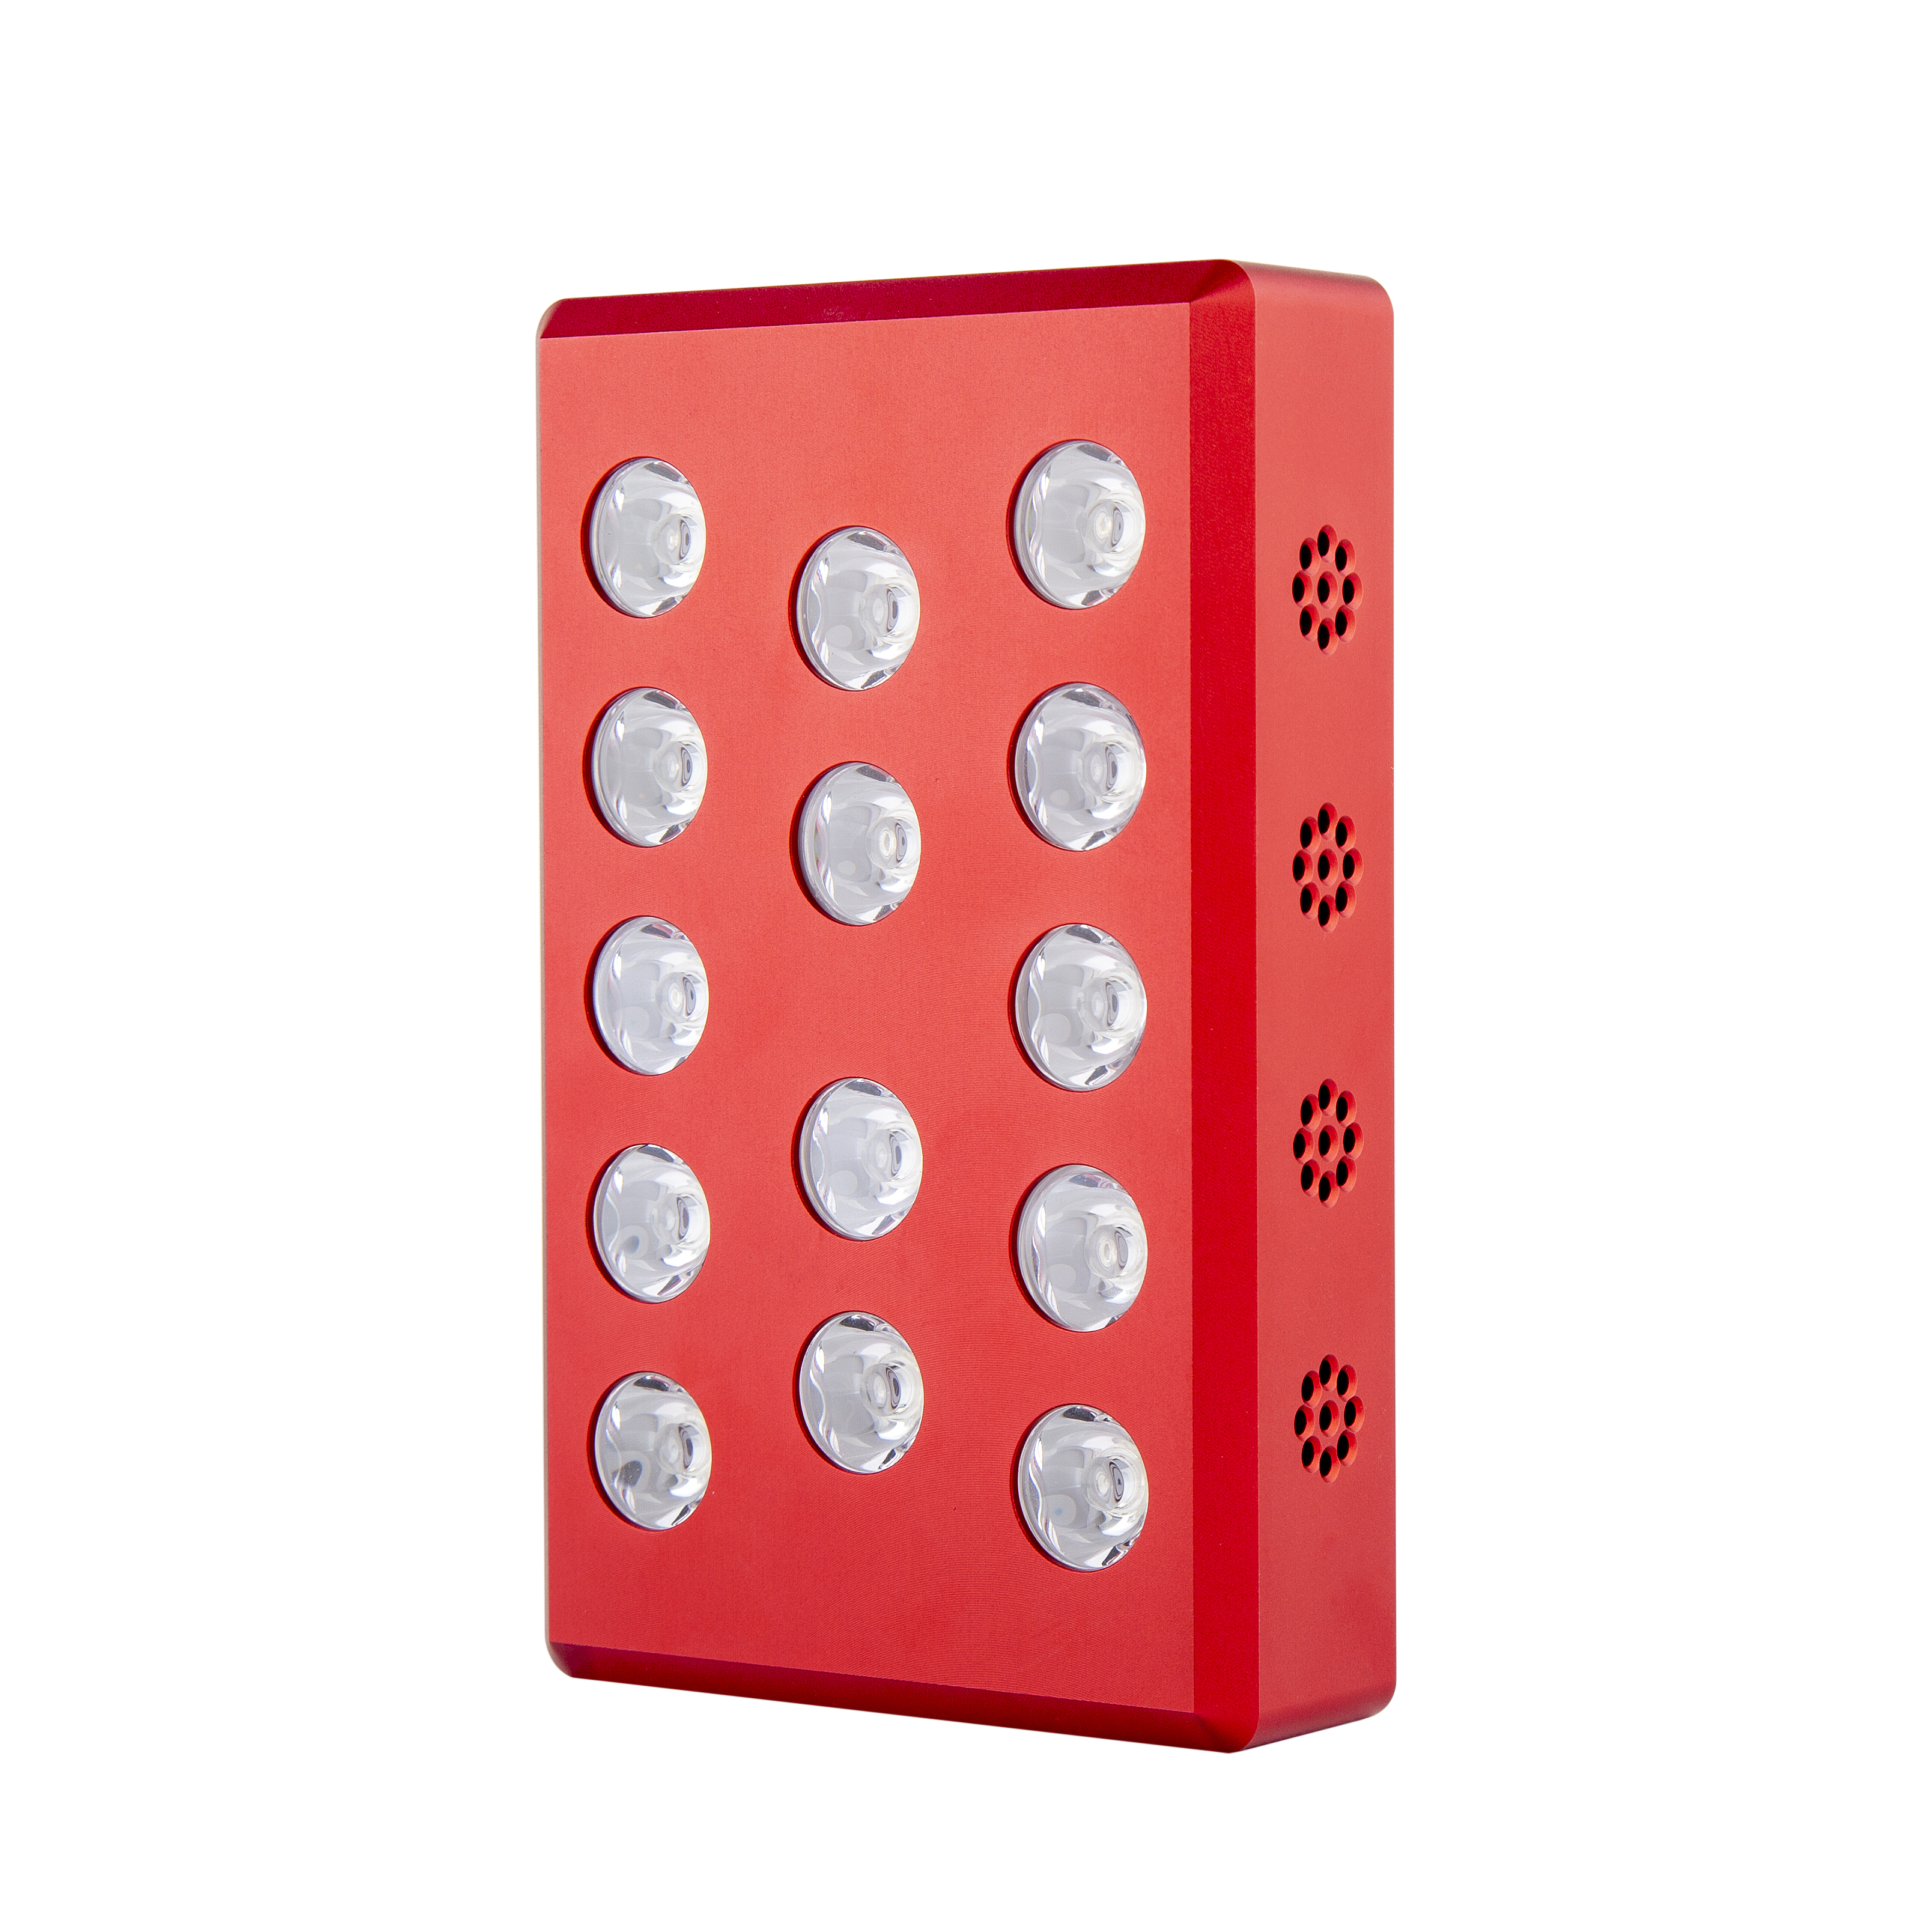 SAIDI Amazon hot sale rechargeable ultra thin 660nm 850nm aluminum in hand mini red light led therapy for travel